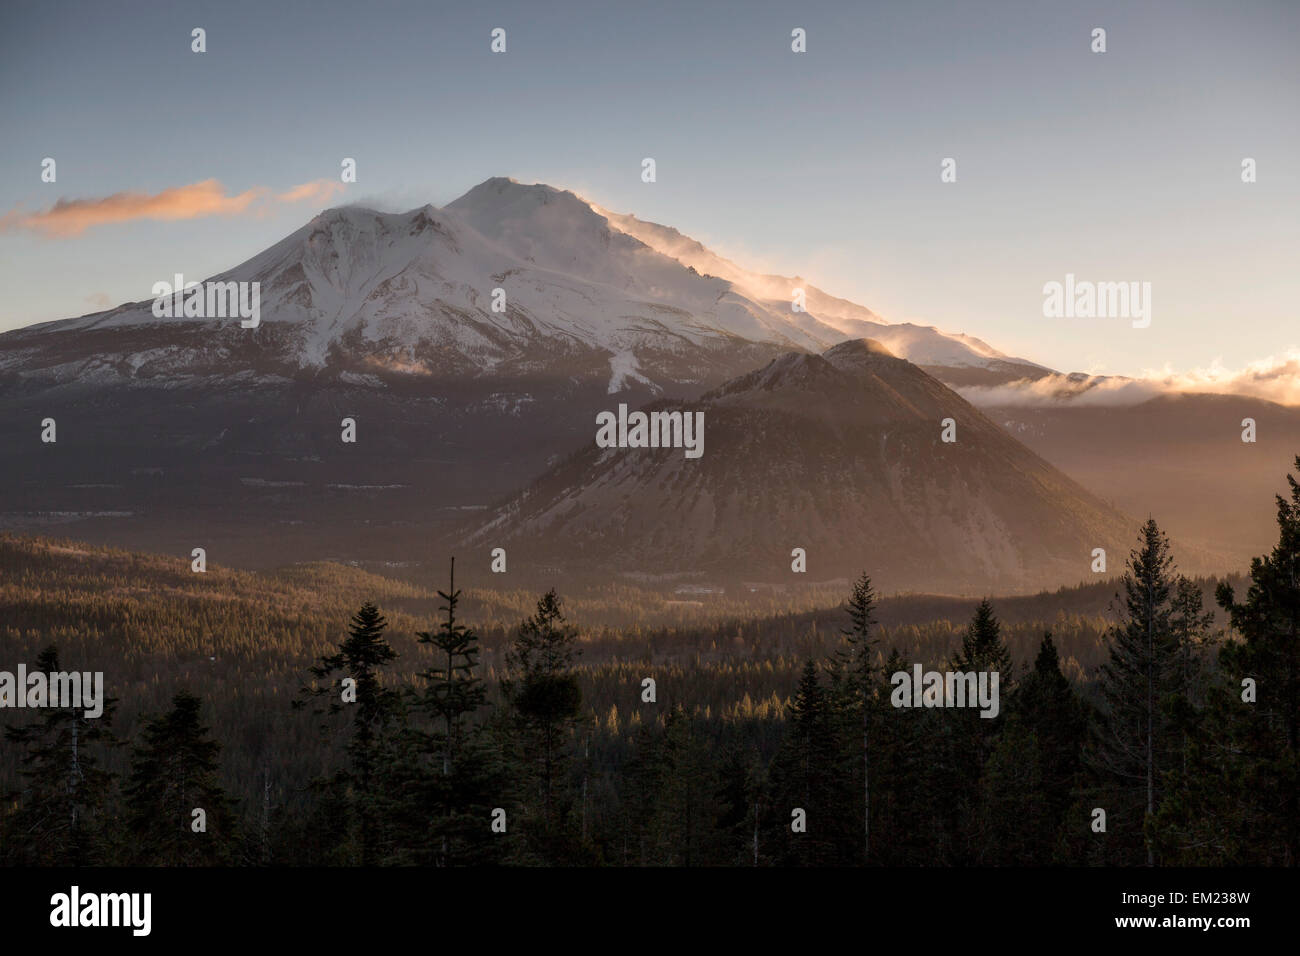 Mount Shasta during sunset - Stock Image